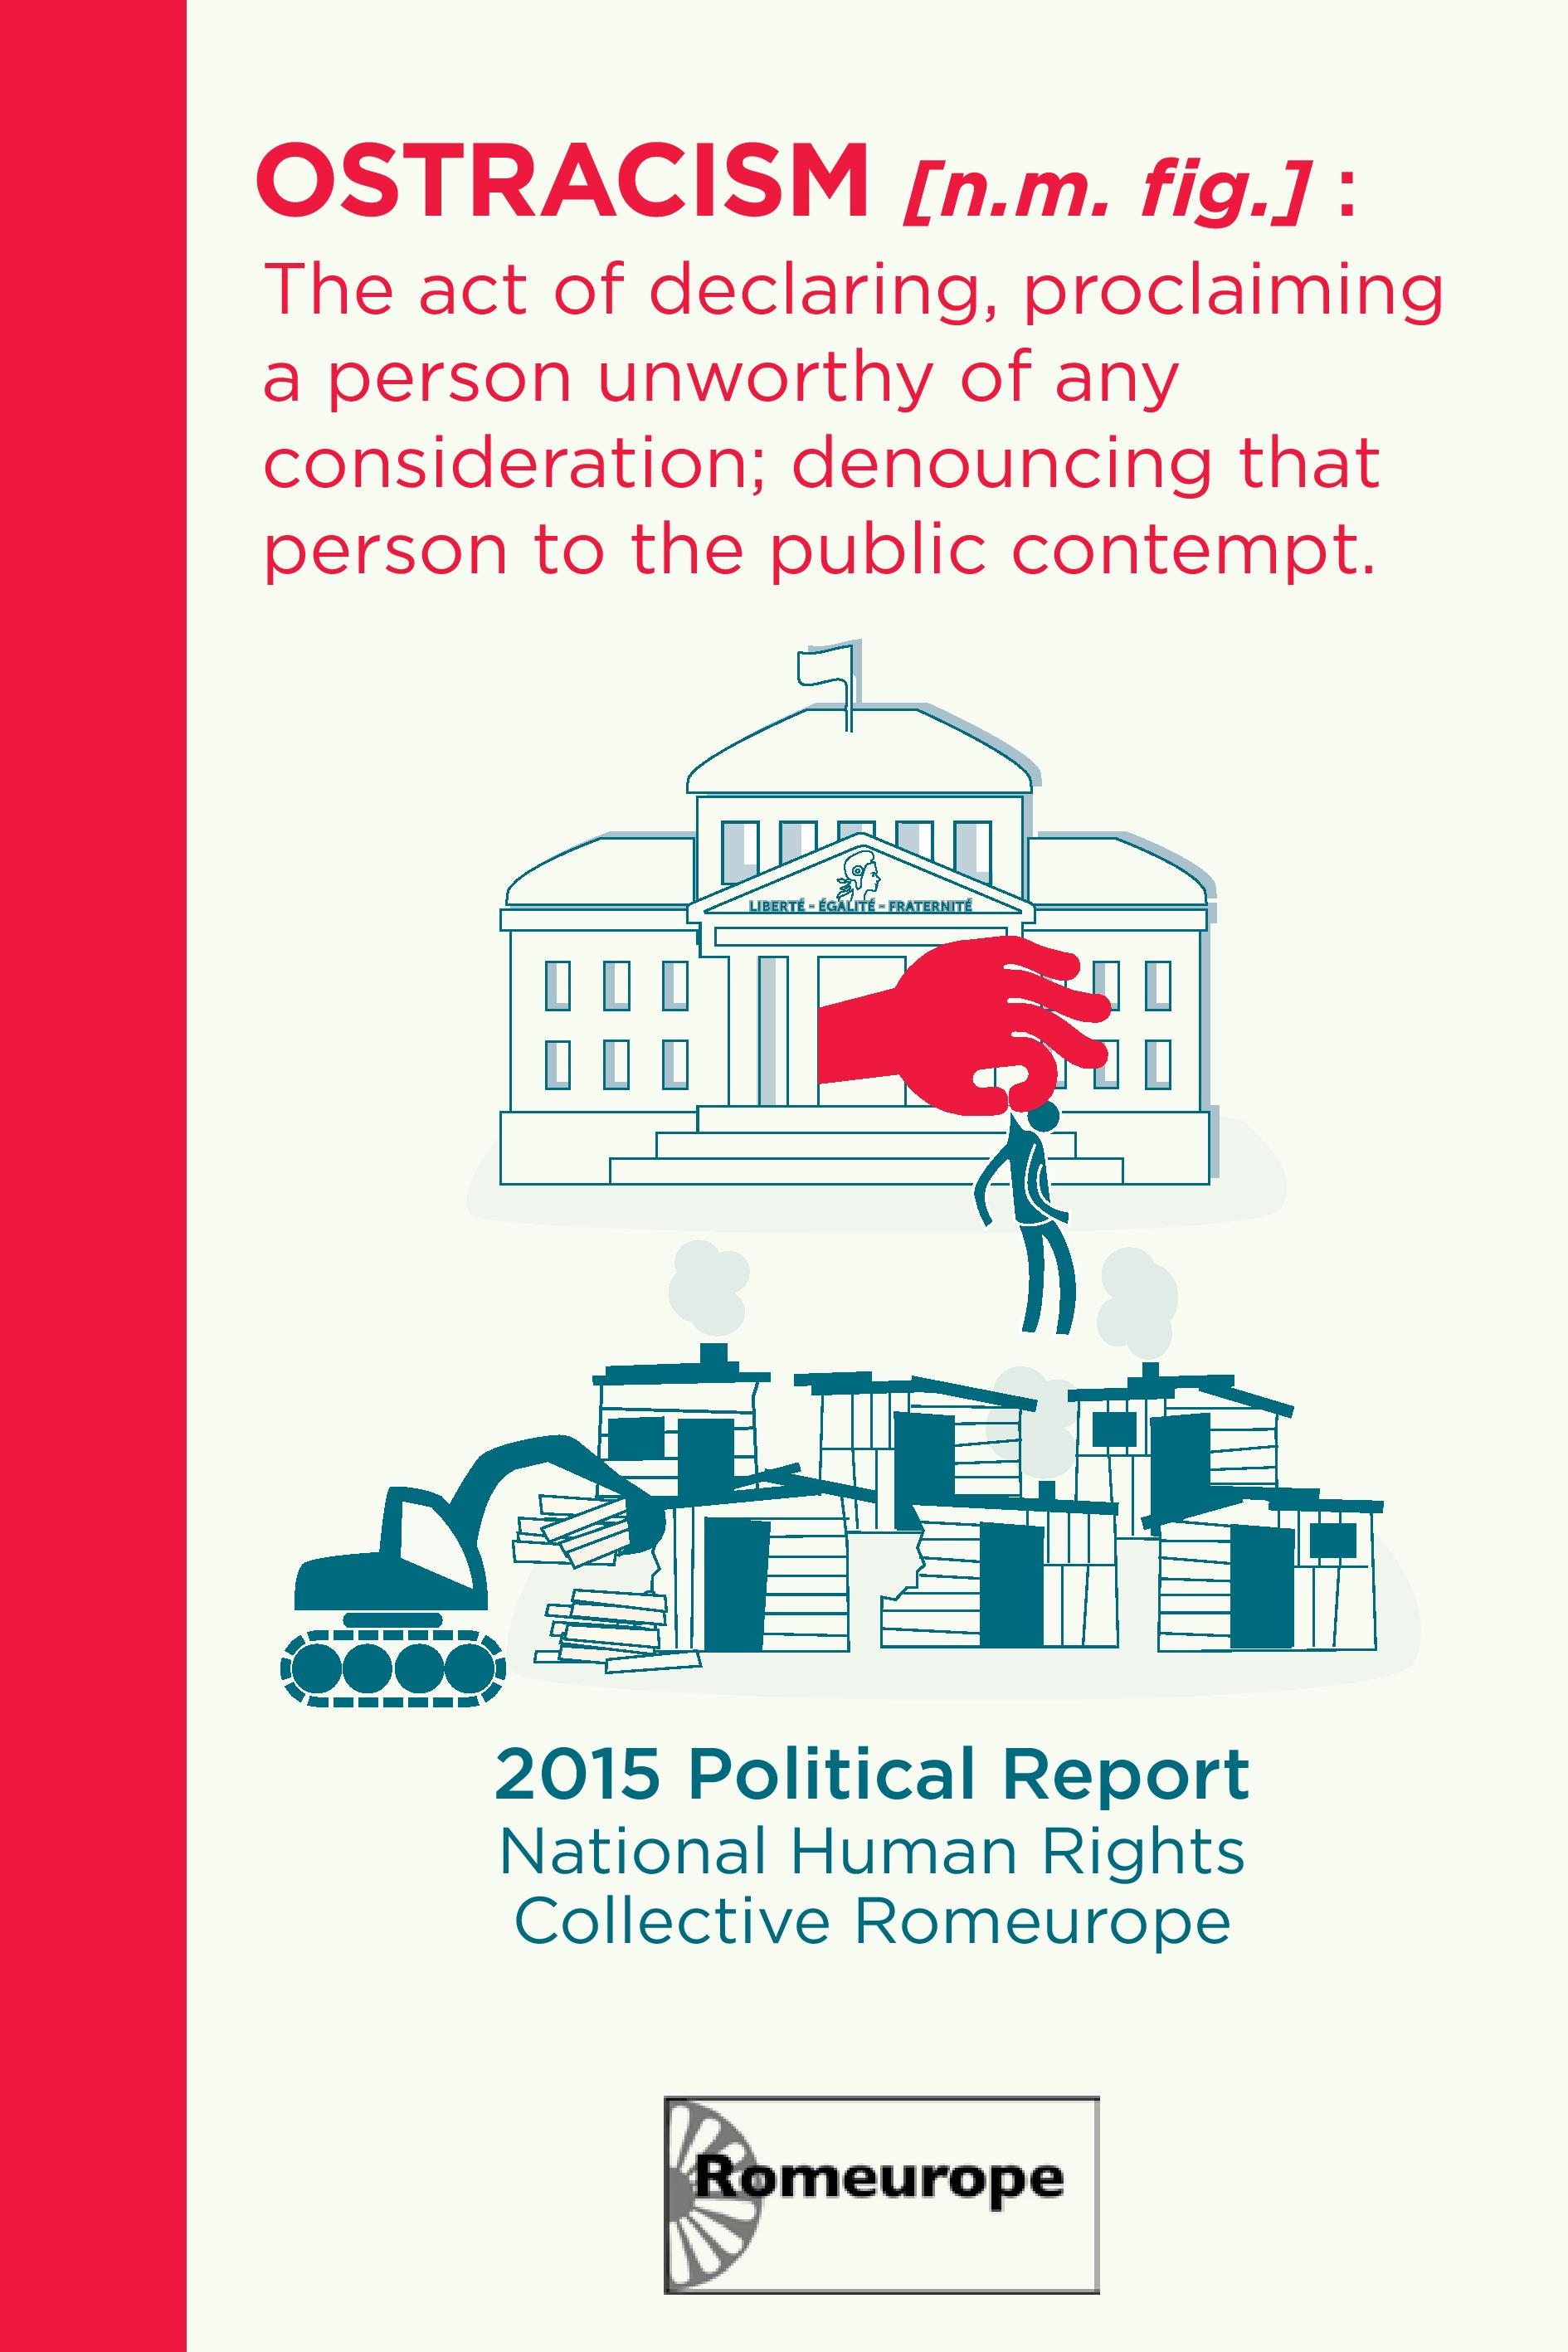 romeurope_political_report_2015_-_ostracism._cover.jpg